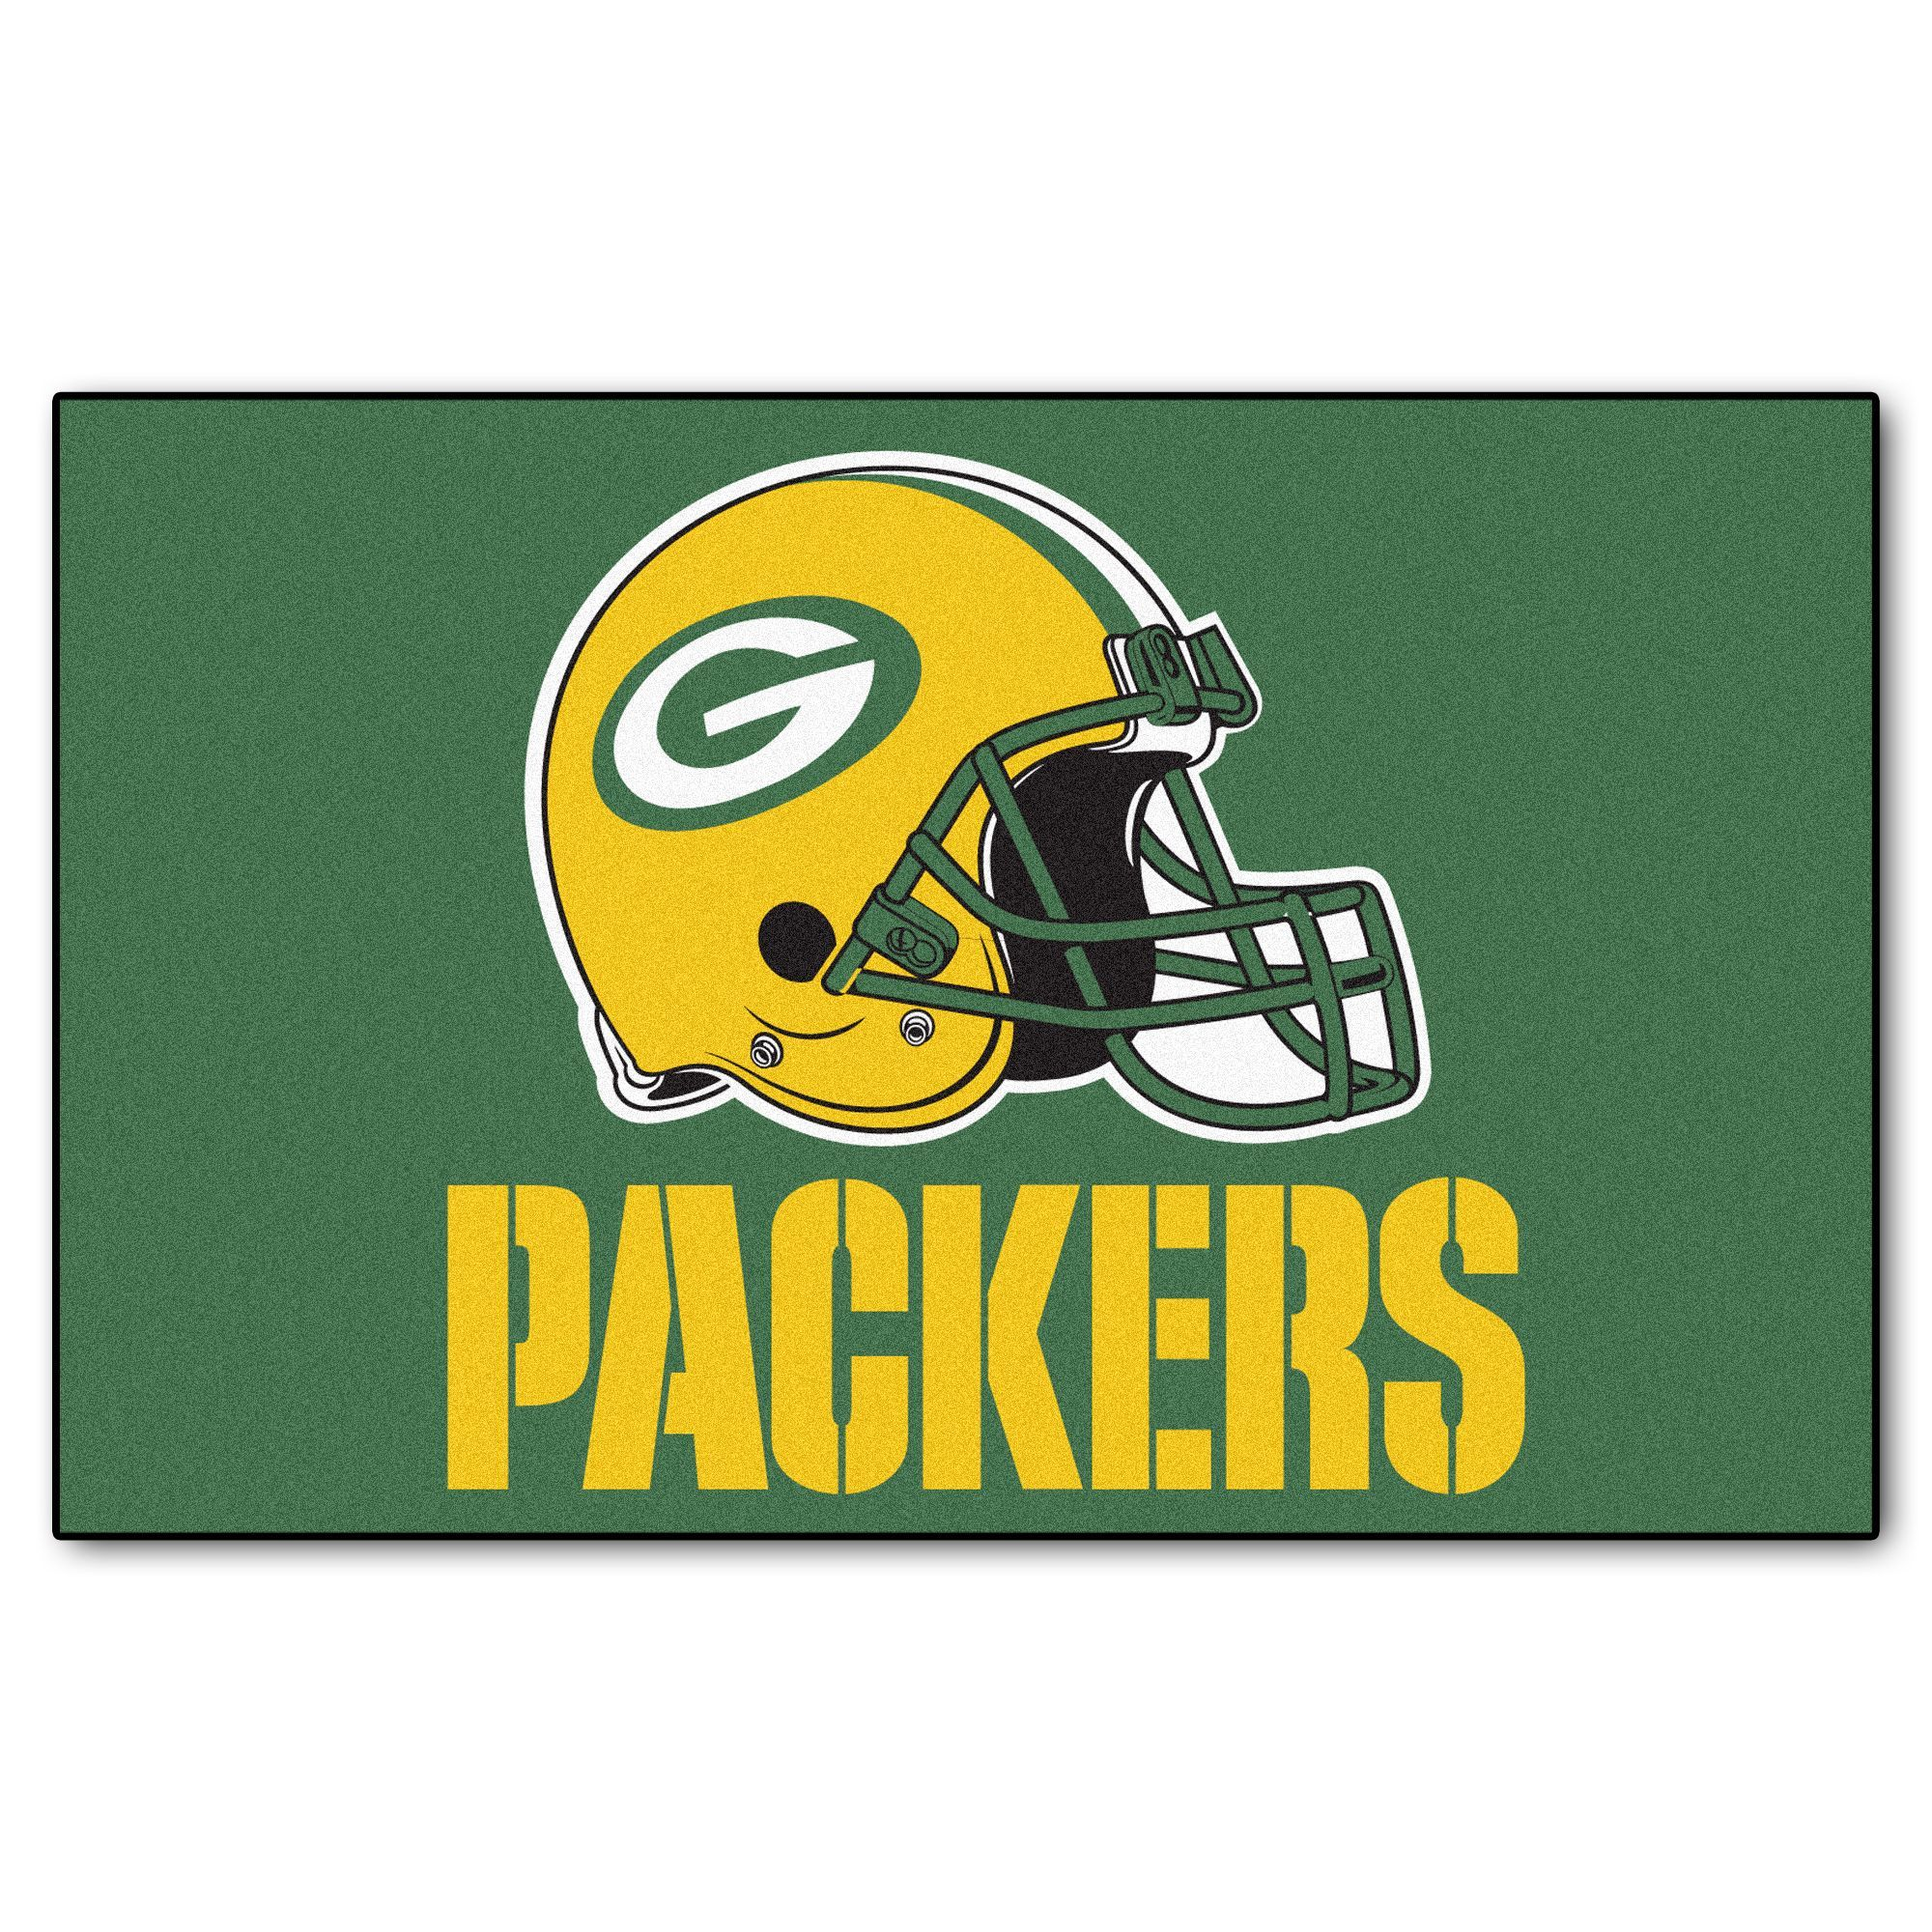 Online Shopping Bedding Furniture Electronics Jewelry Clothing More Green Bay Packers Logo Nfl Green Bay Green Bay Packers